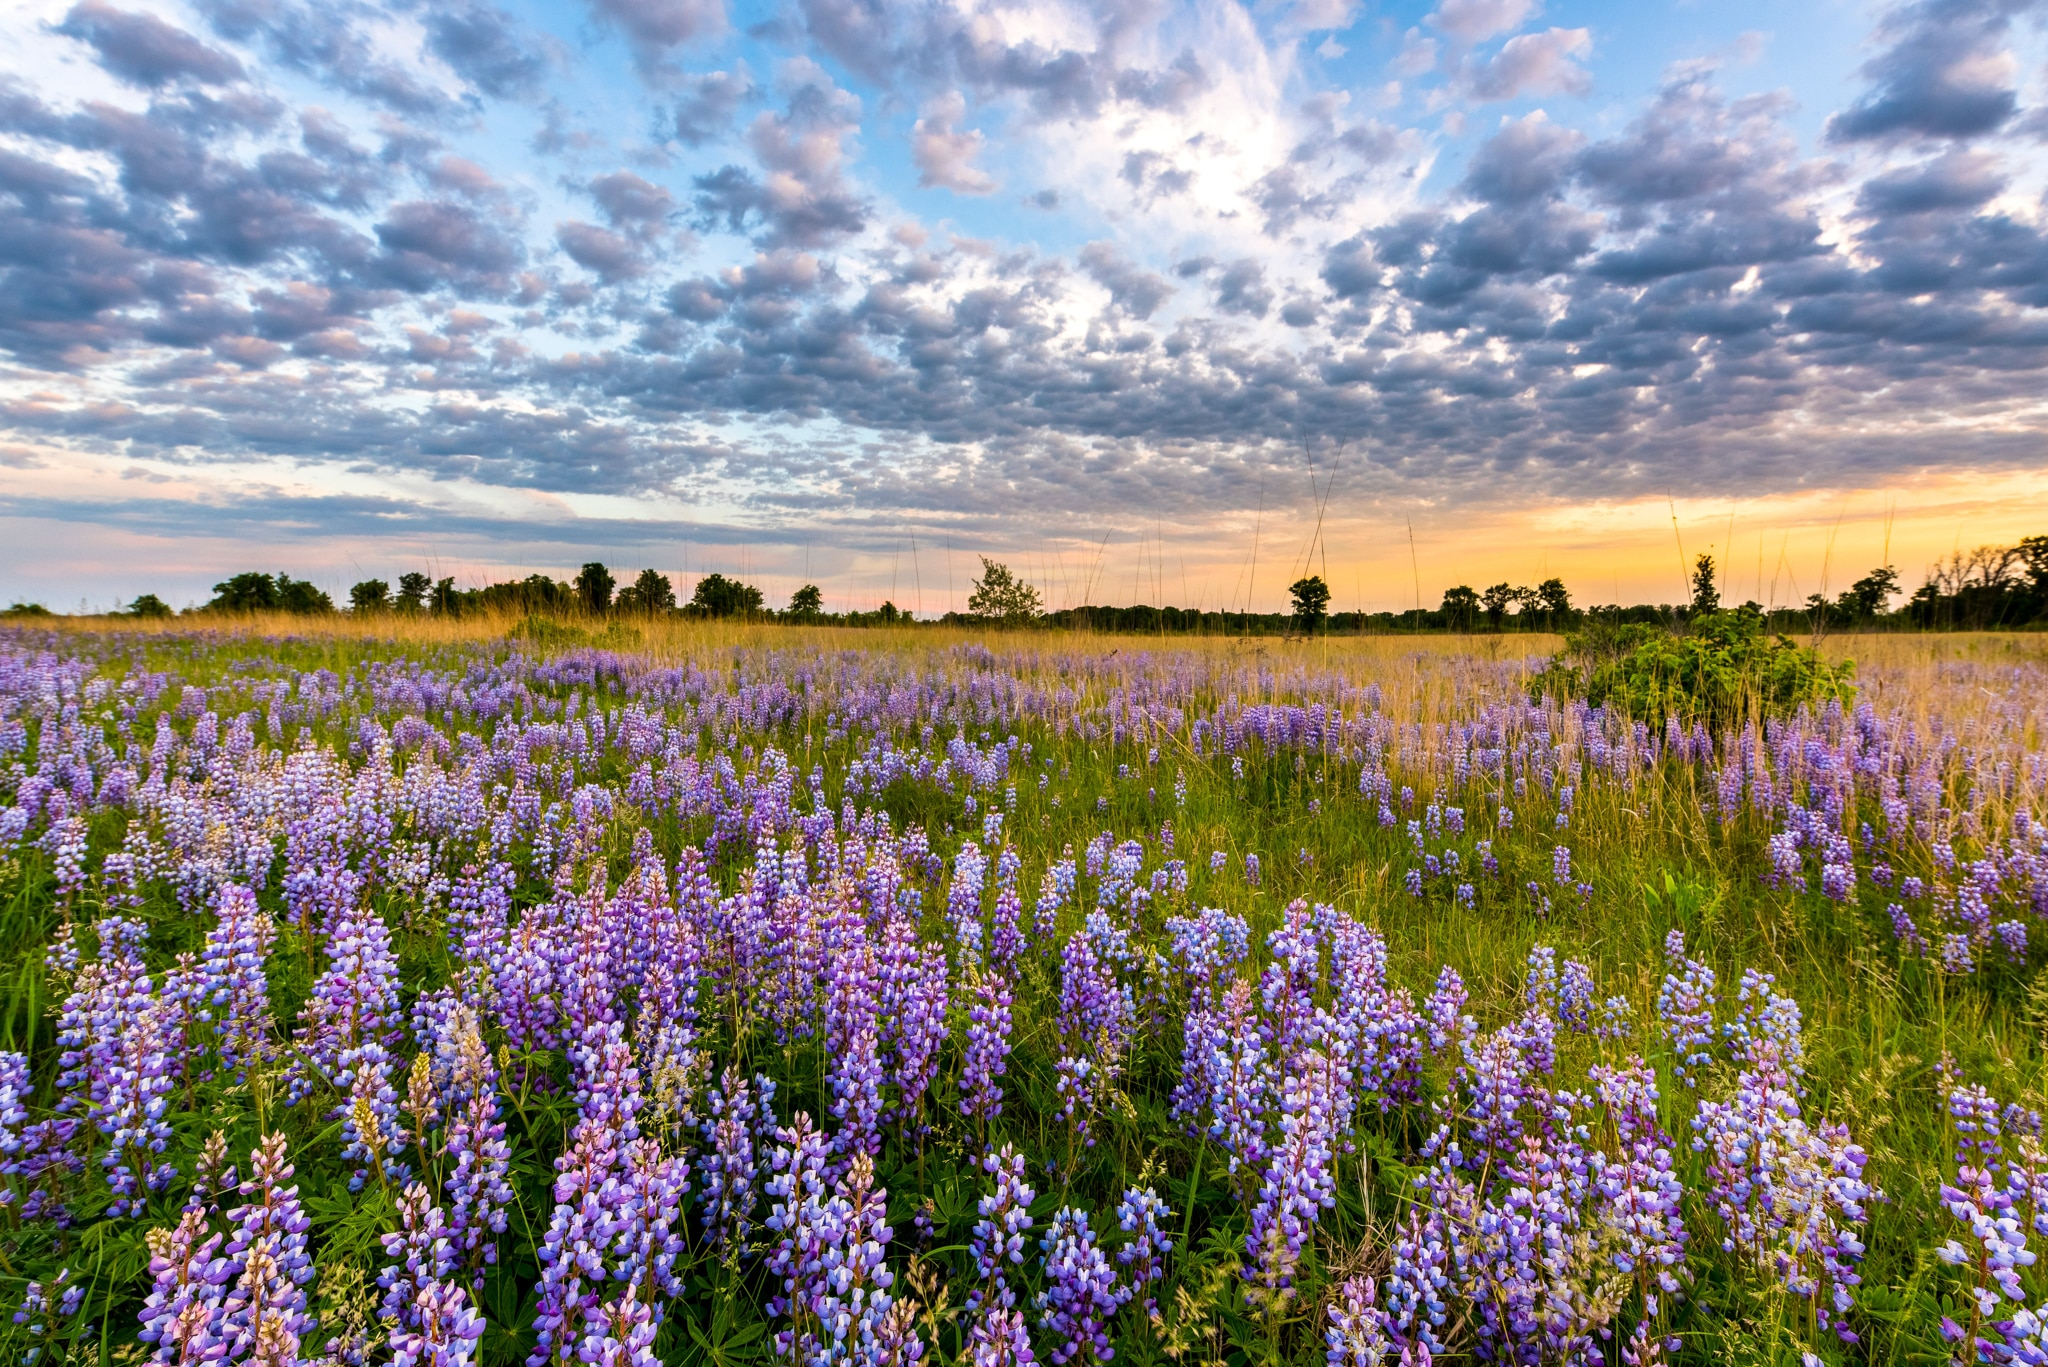 Landscape of wild purple flowers against a clouded sky (© Joe Mamer Photography/Alamy Stock Photo)